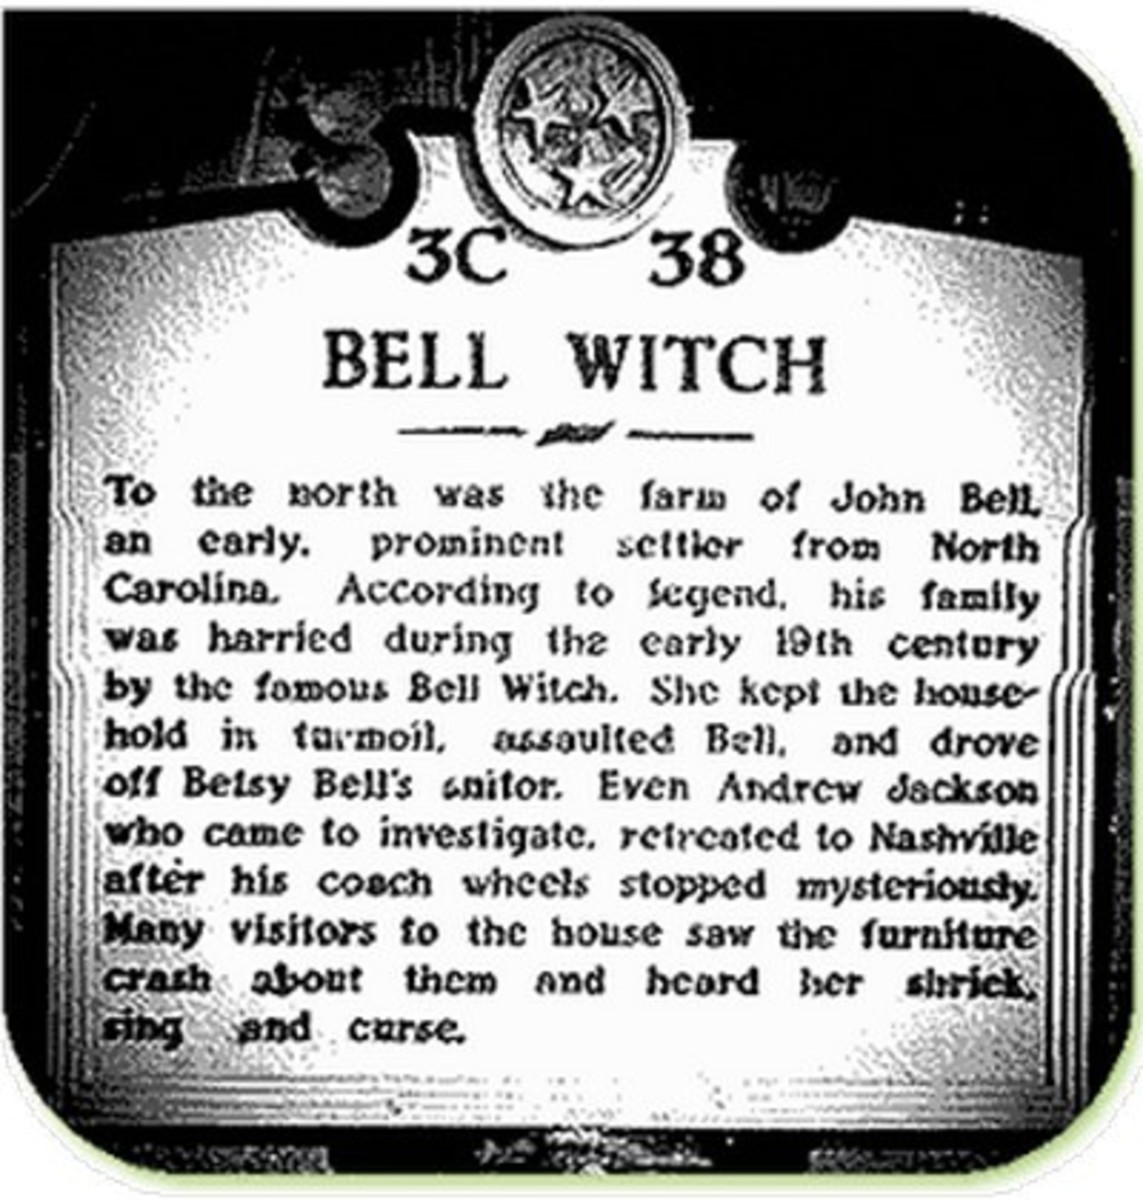 The Bell Witch Cave Haunted Tennessee